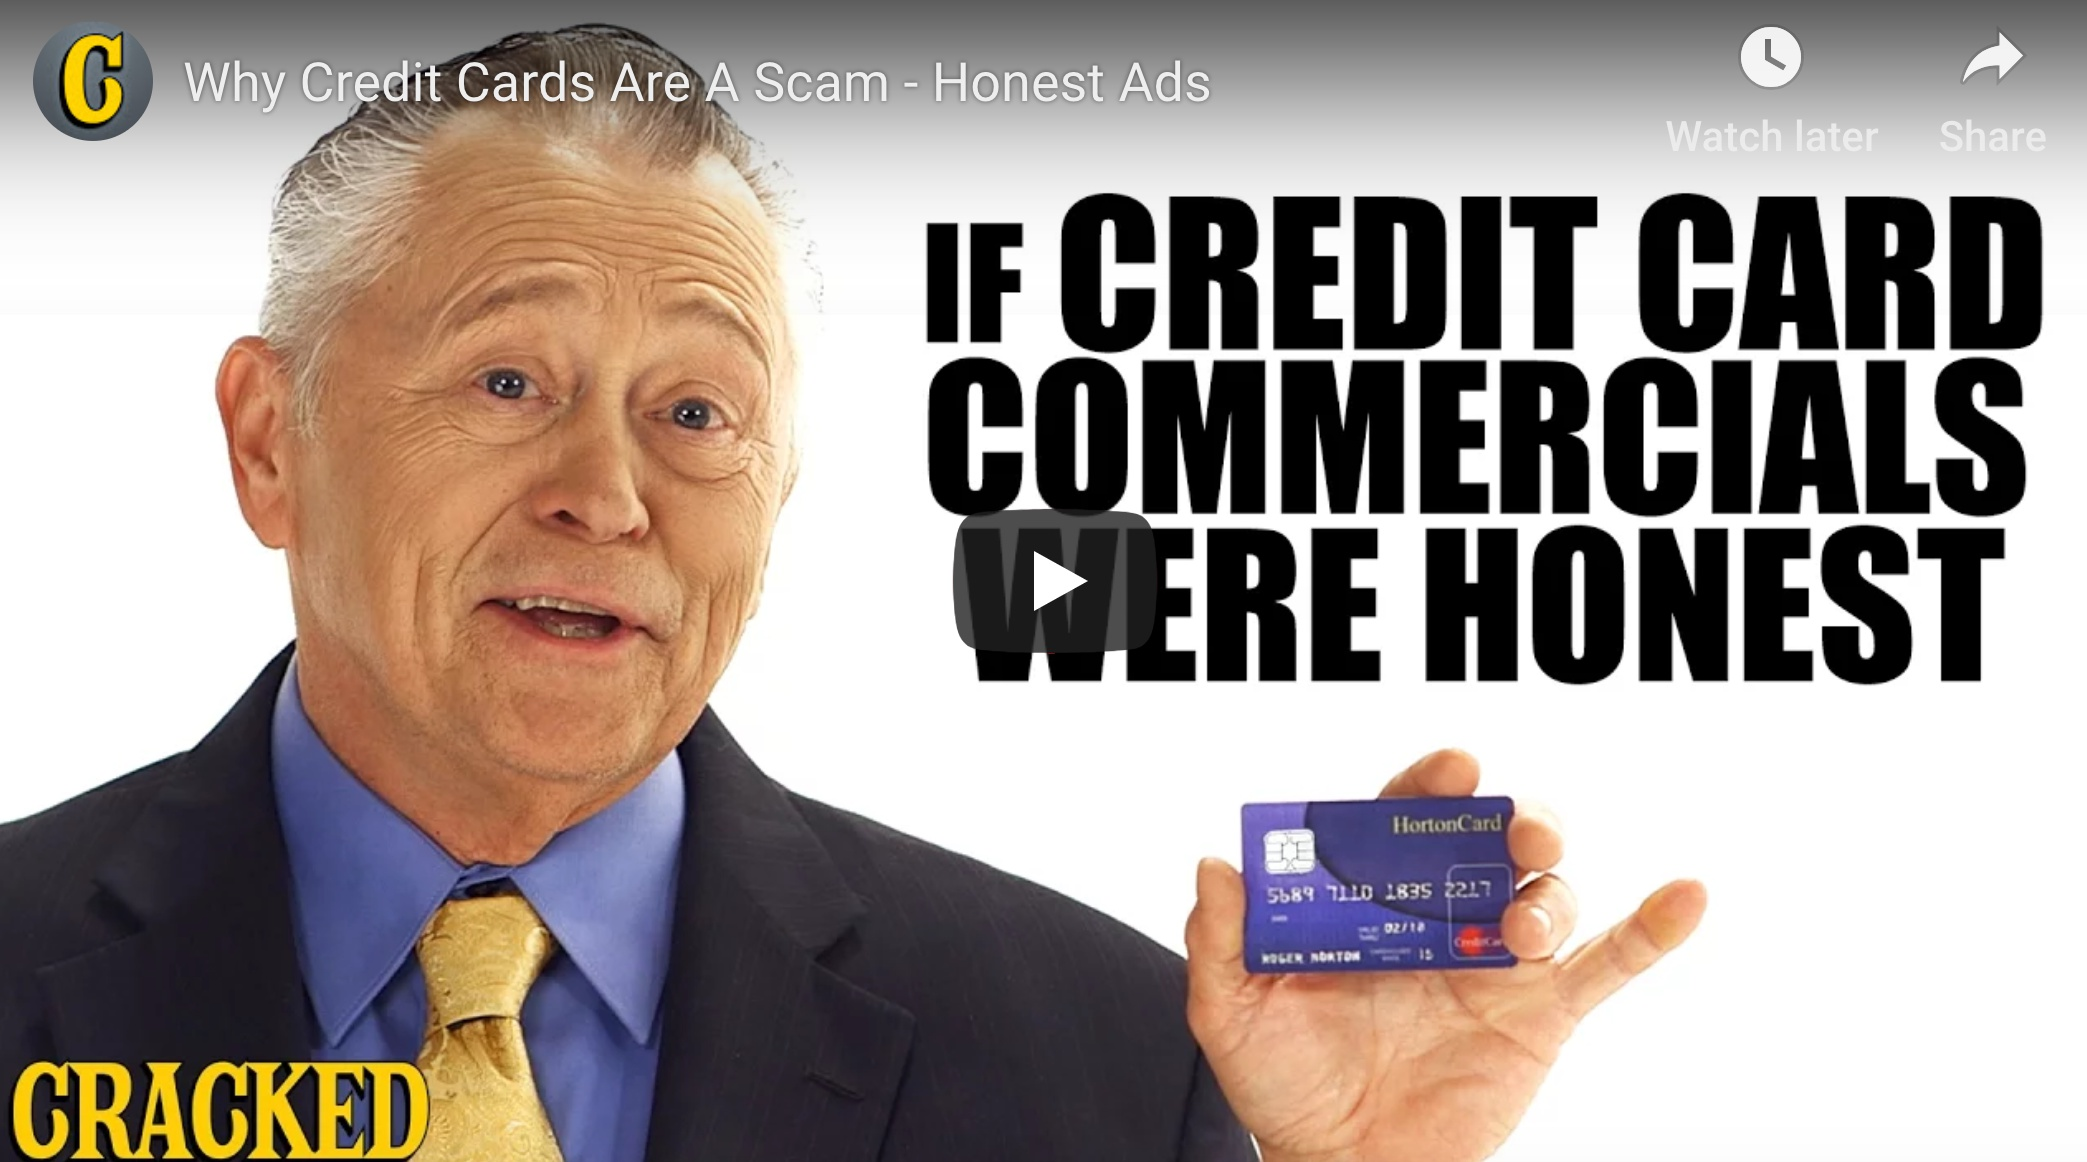 The Hypnosis of Credit Cards (humor, sort of)